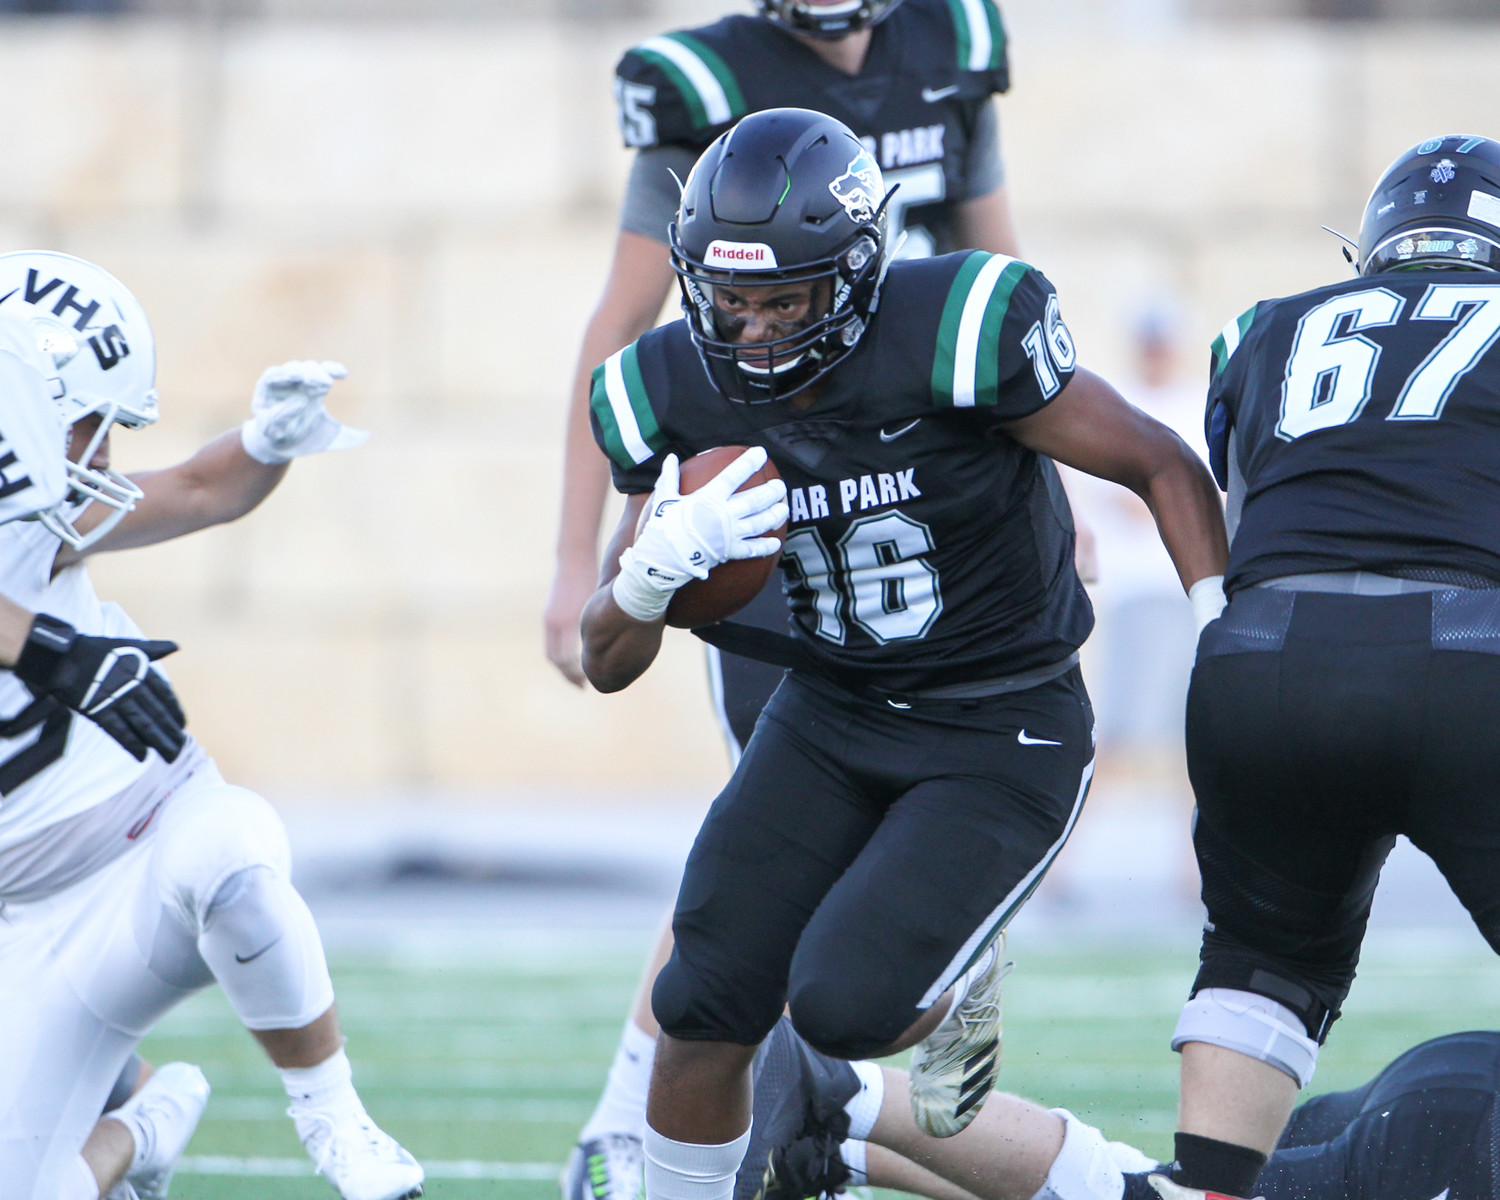 Cedar Park Timberwolves junior running back Jonathan Stockwell (16) carries the ball during a high school football game between the Cedar Park Timberwolves and the Vandegrift Vipers on Friday, Aug. 31, 2018 in Cedar Park, Texas.